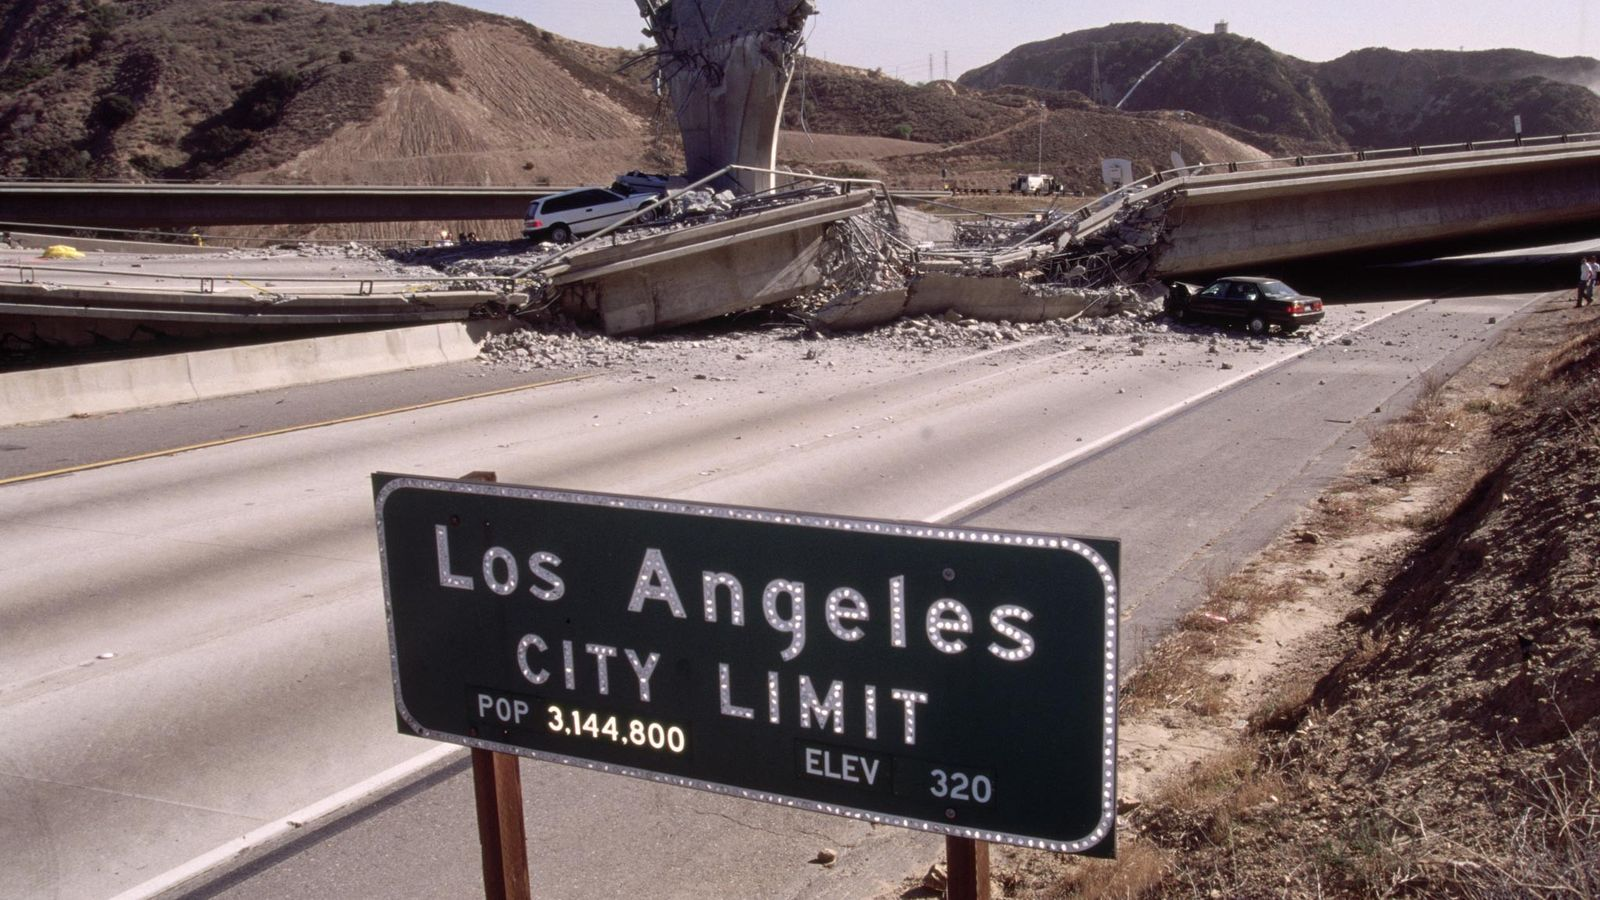 The magnitude 6.7 Northridge earthquake rocked Los Angeles in 1994, killing more than 60 people and ...